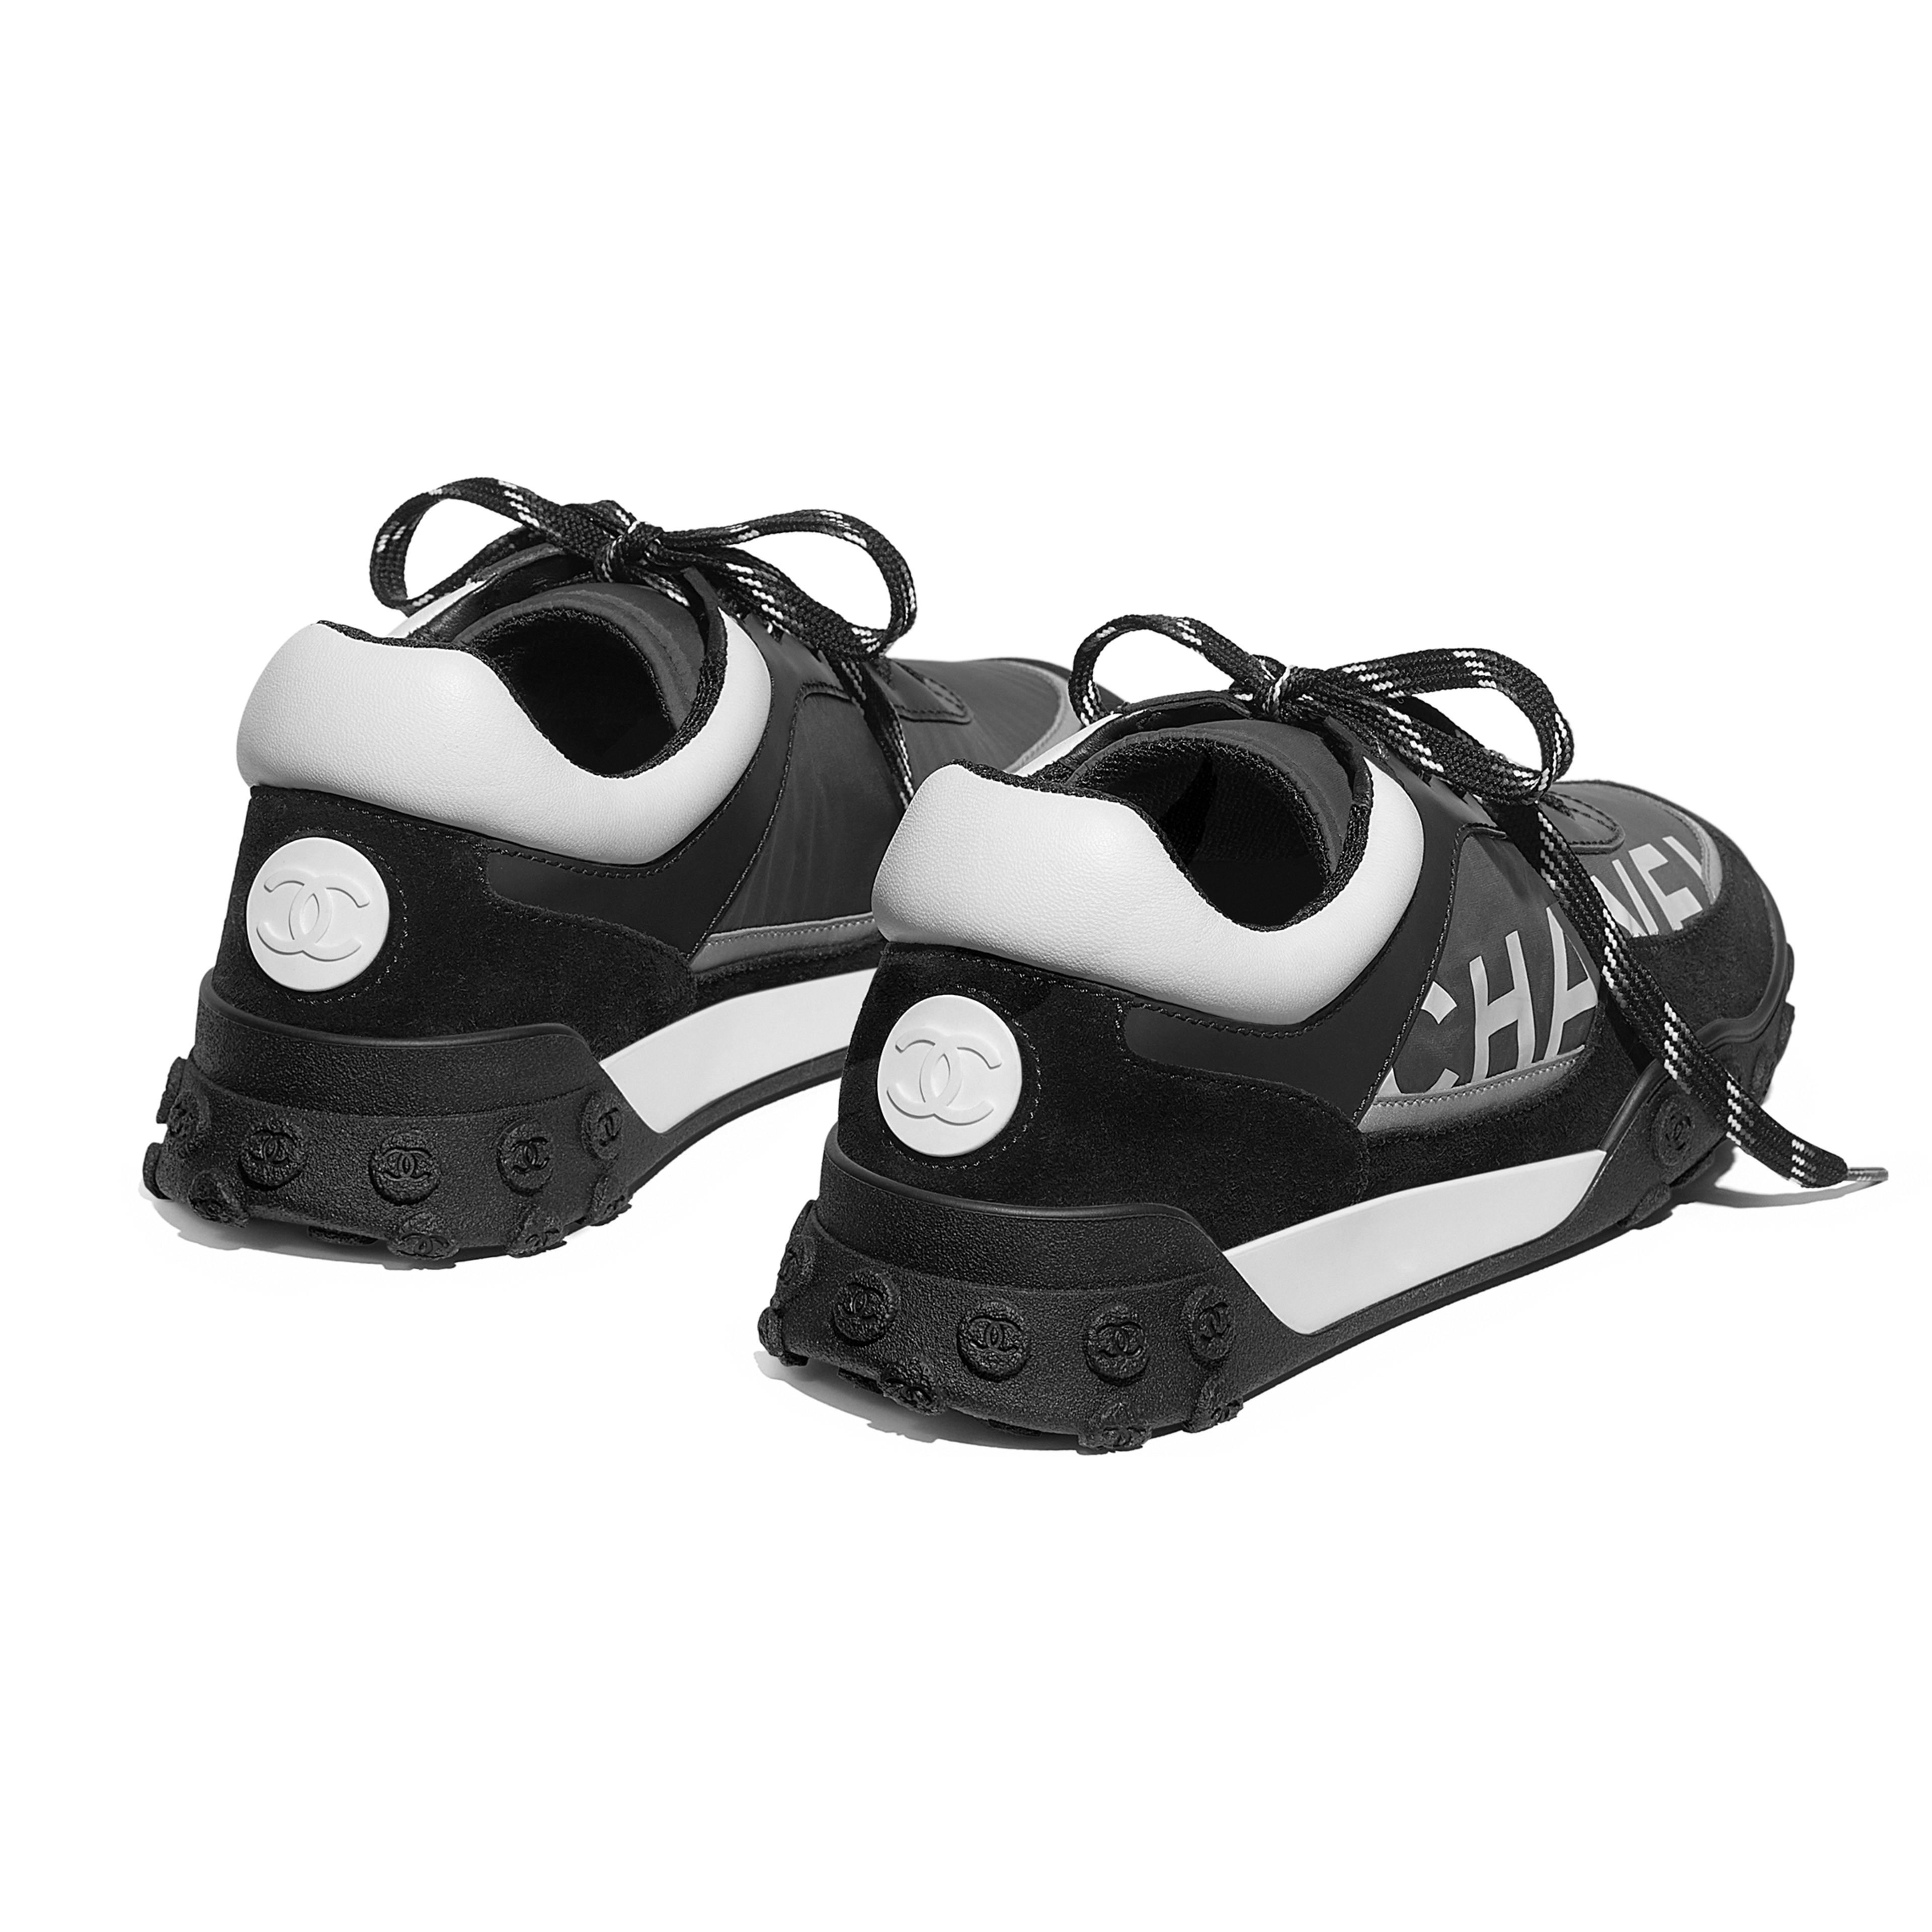 Sneakers - Gray, Black & White - Nylon & Calfskin - Other view - see full sized version